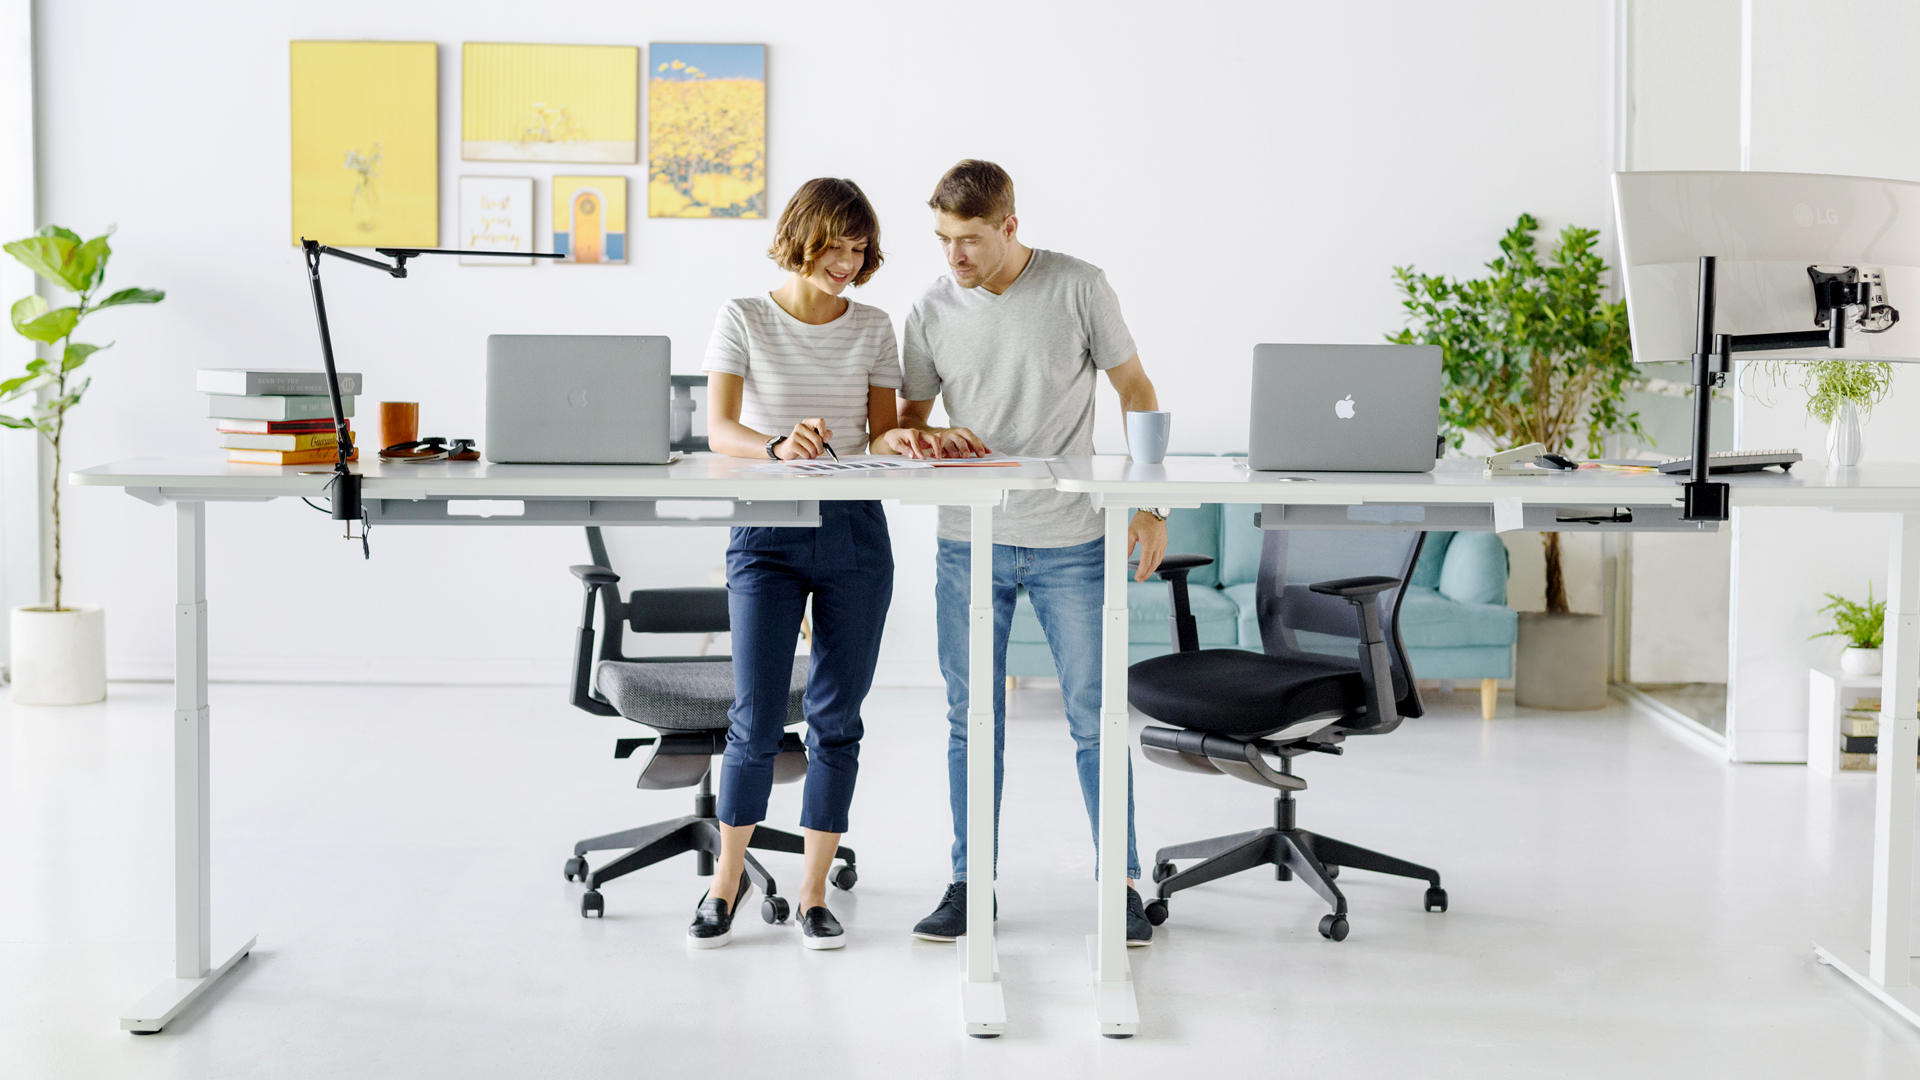 How To Use A Standing Desk Correctly?